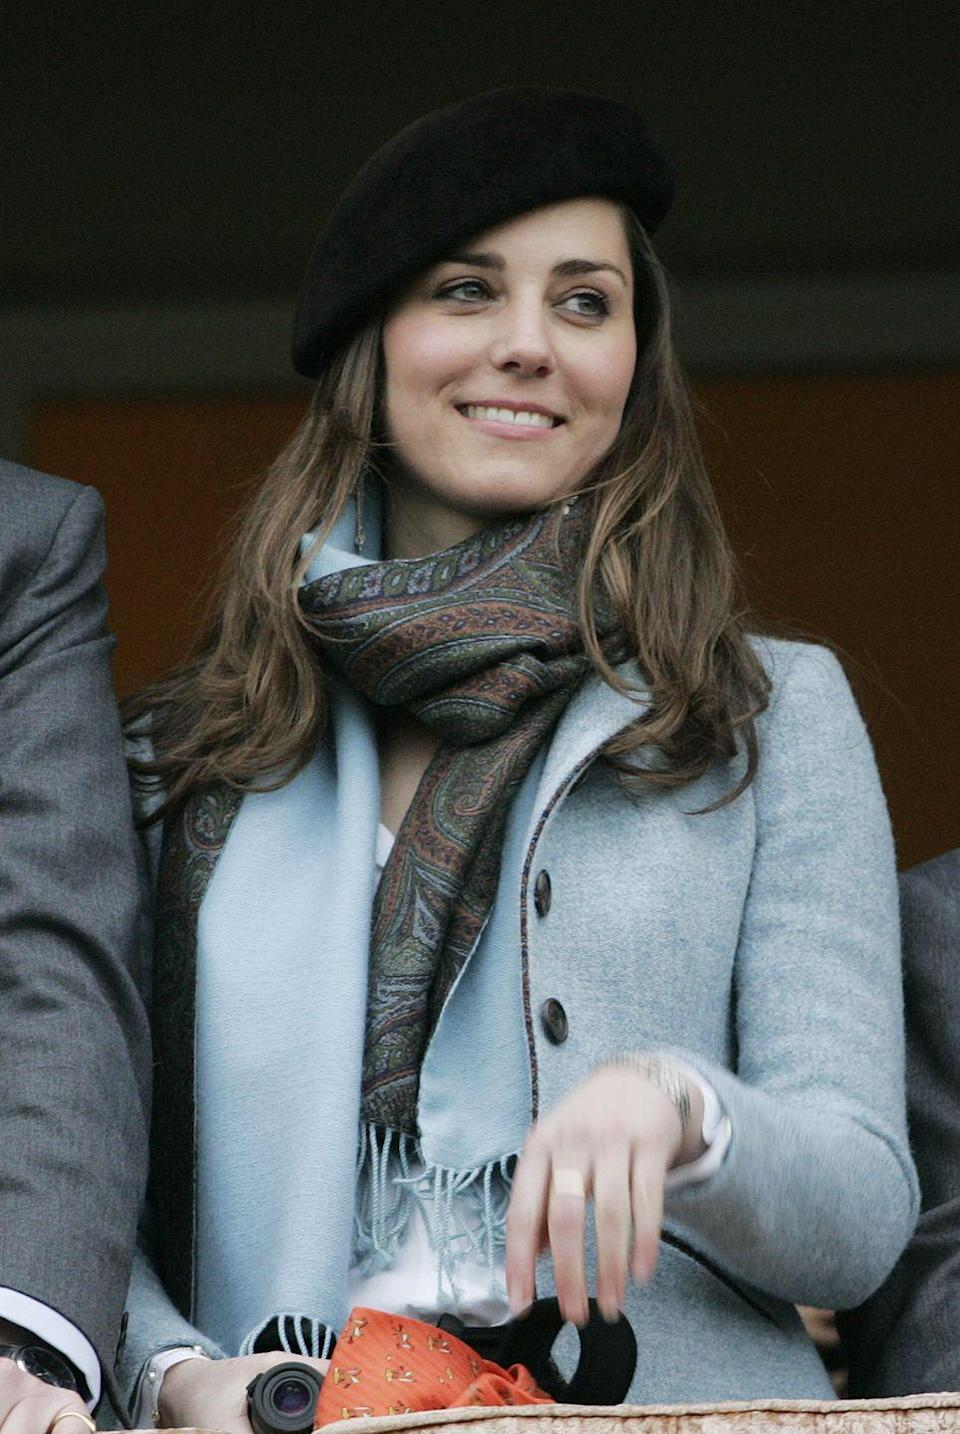 <p>At the final day of Cheltenham Festival in Gloucestershire, England wearing a black beret and paisley scarf.</p>